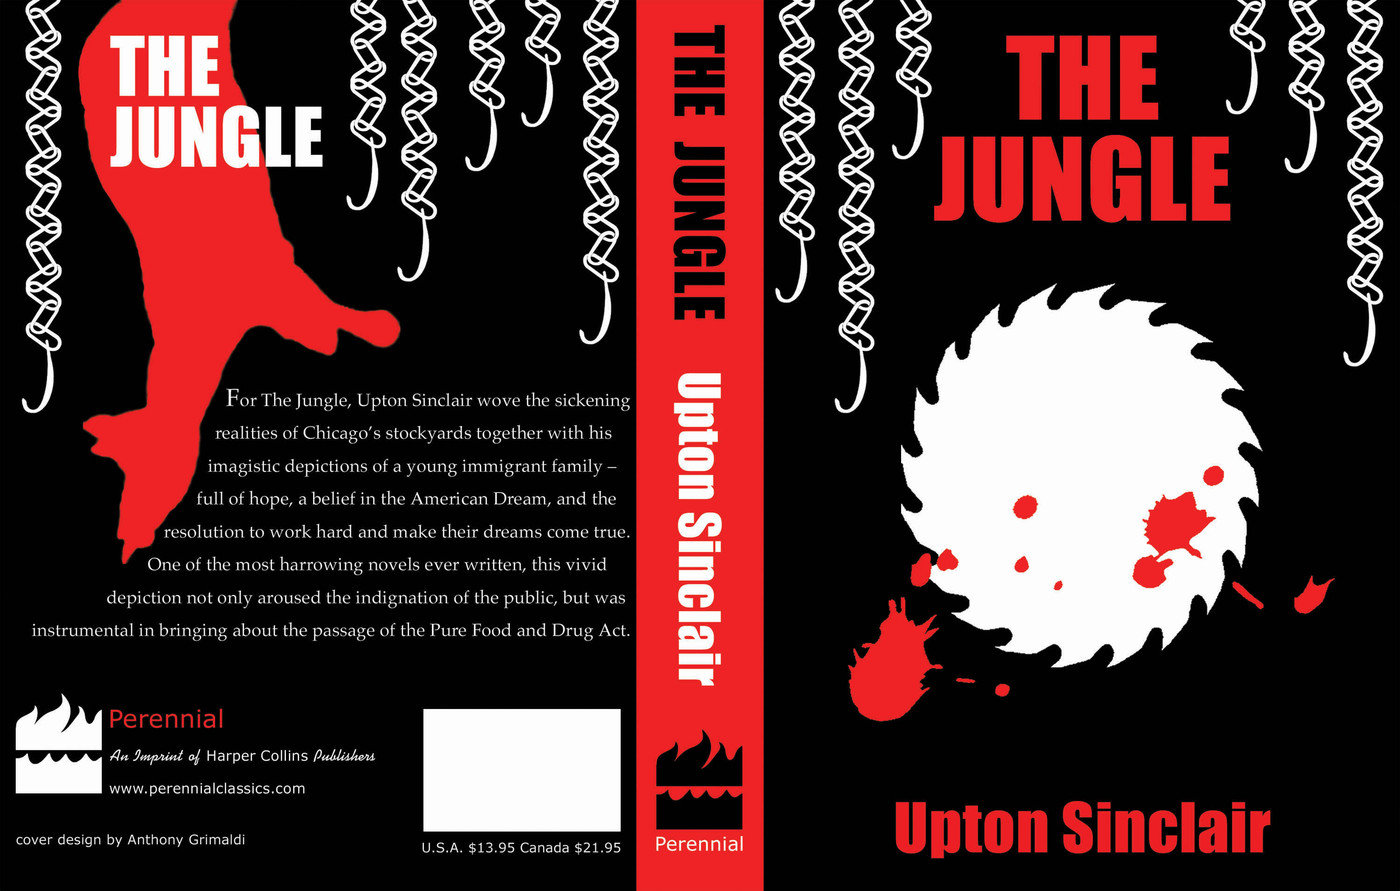 an overview of the novel the jungle by upton sinclair The jungle: theme analysis, free study guides and book notes including comprehensive chapter analysis, complete summary analysis, author biography information, character profiles, theme analysis, metaphor analysis, and top ten quotes on classic literature.